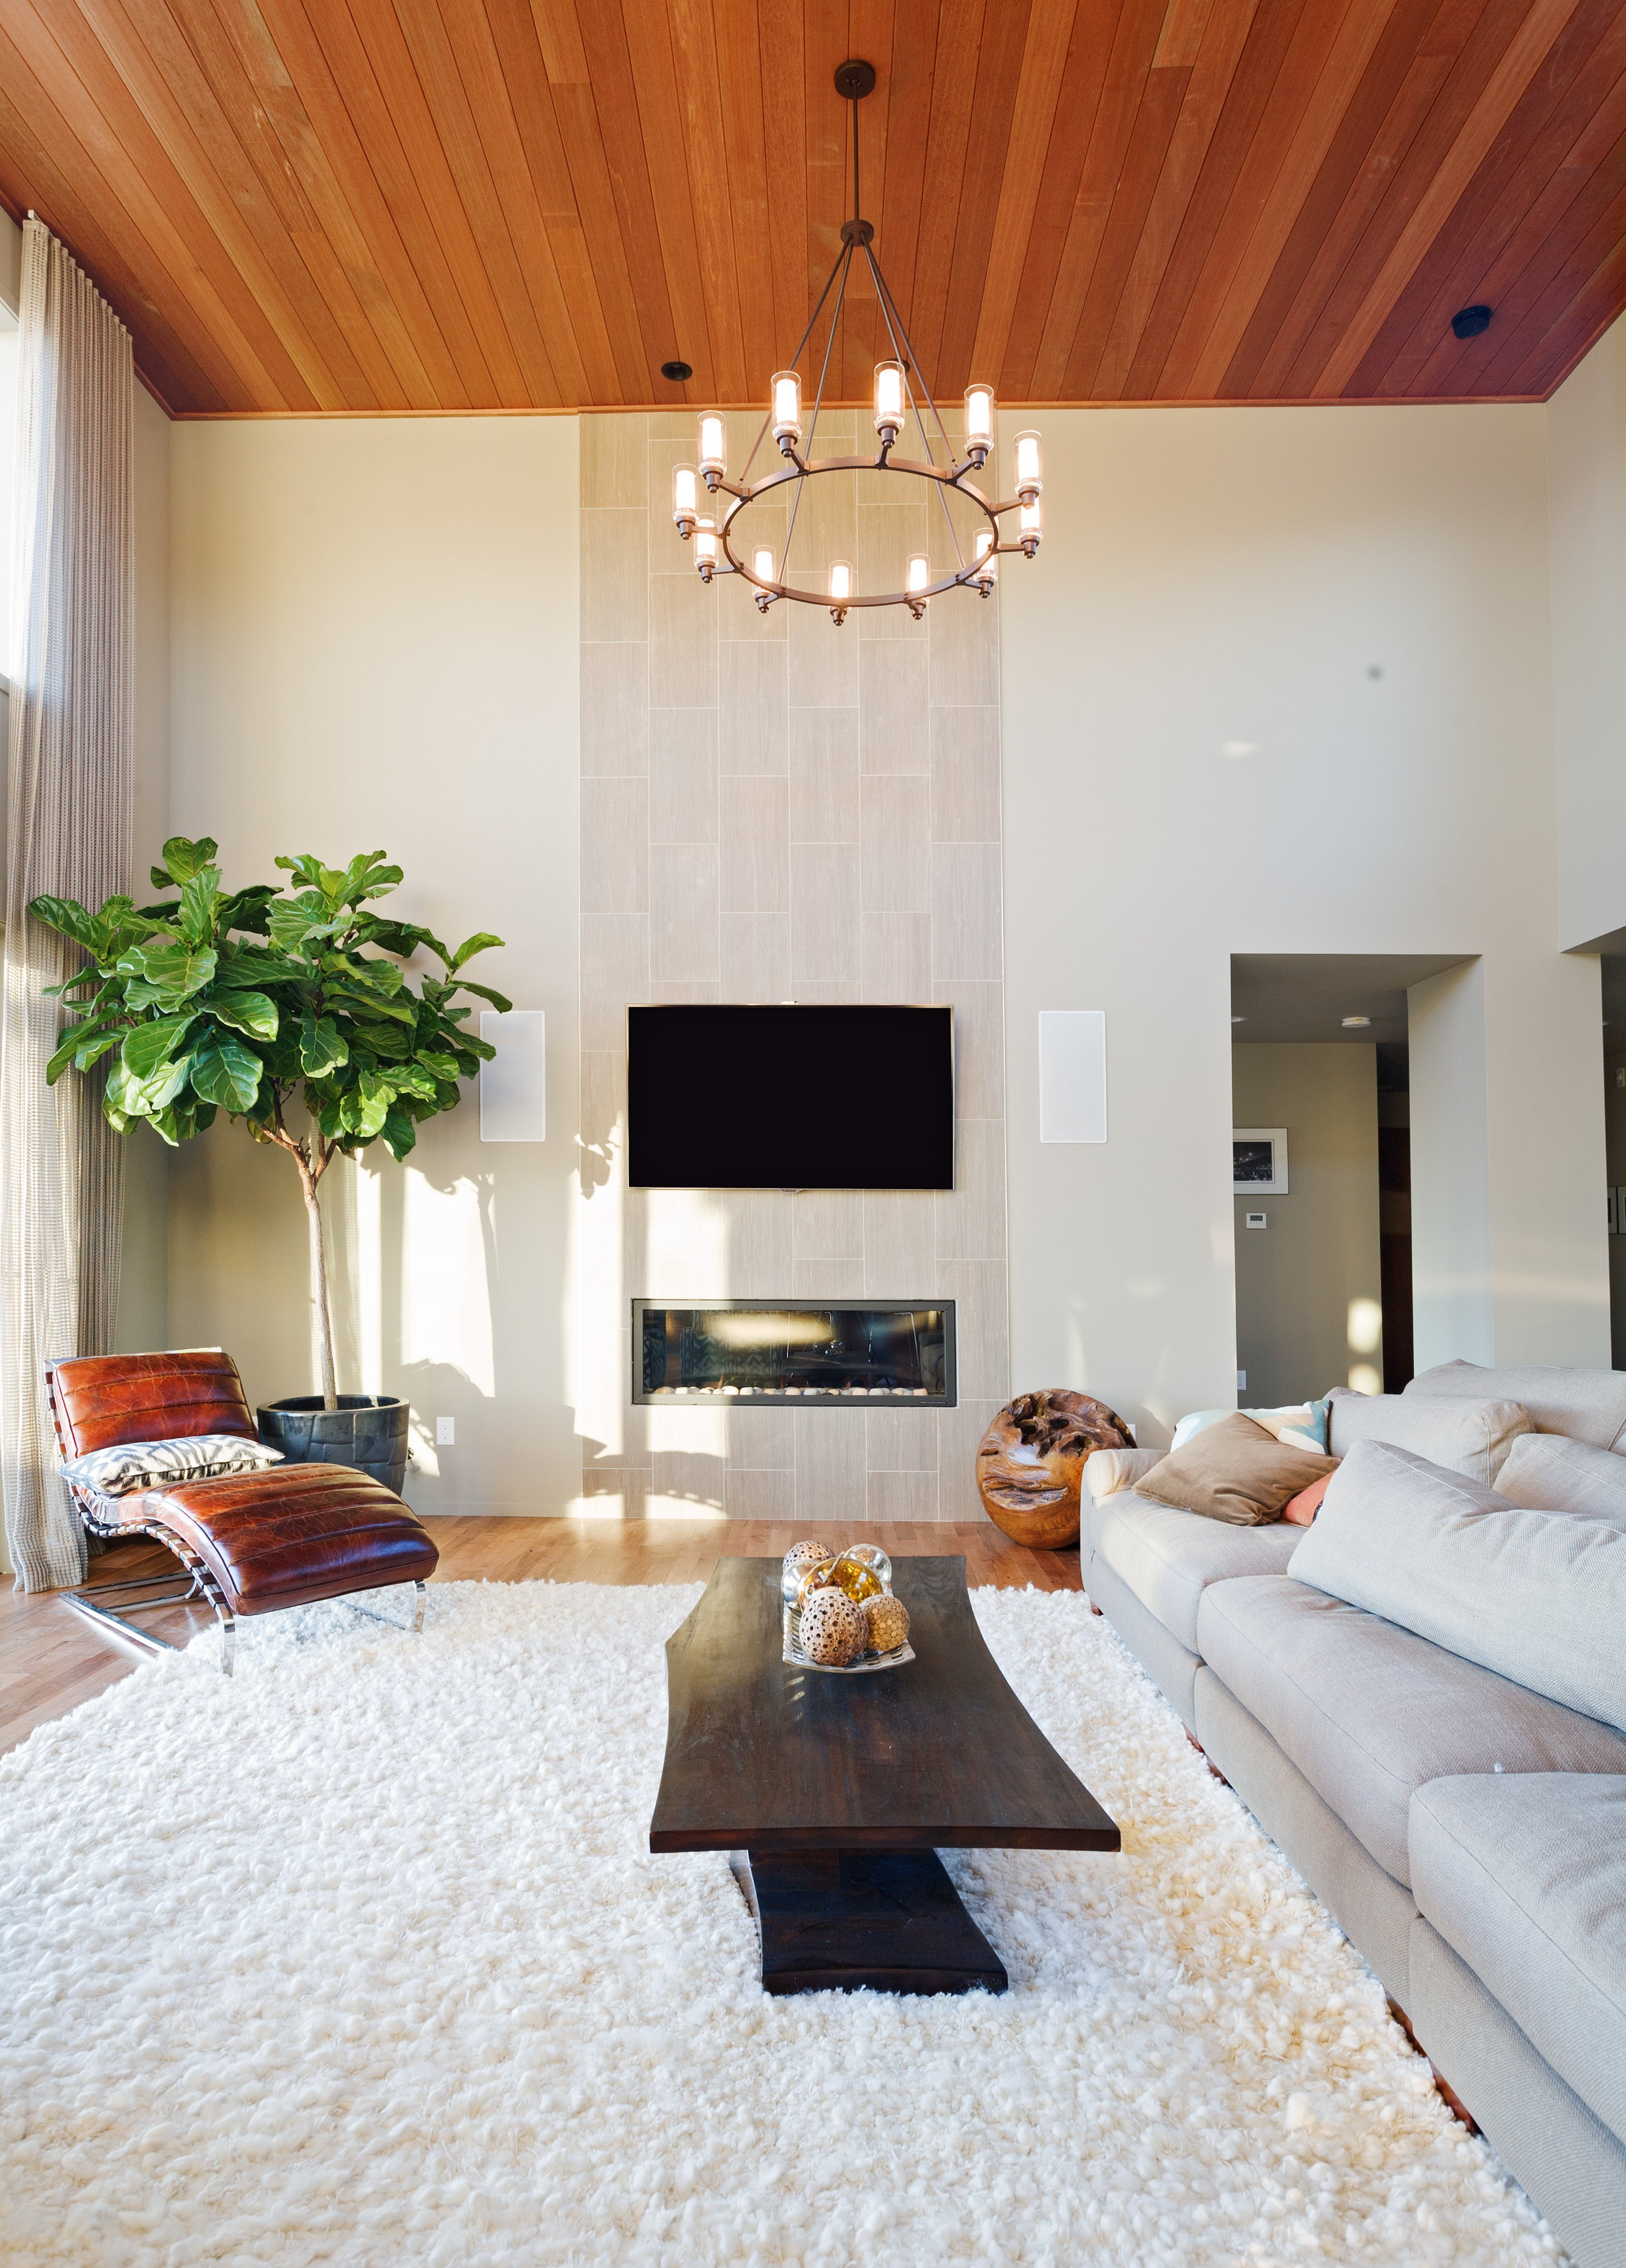 This living space features a long gray couch and a white rug along with a center table and a fireplace under the home's tall ceiling.